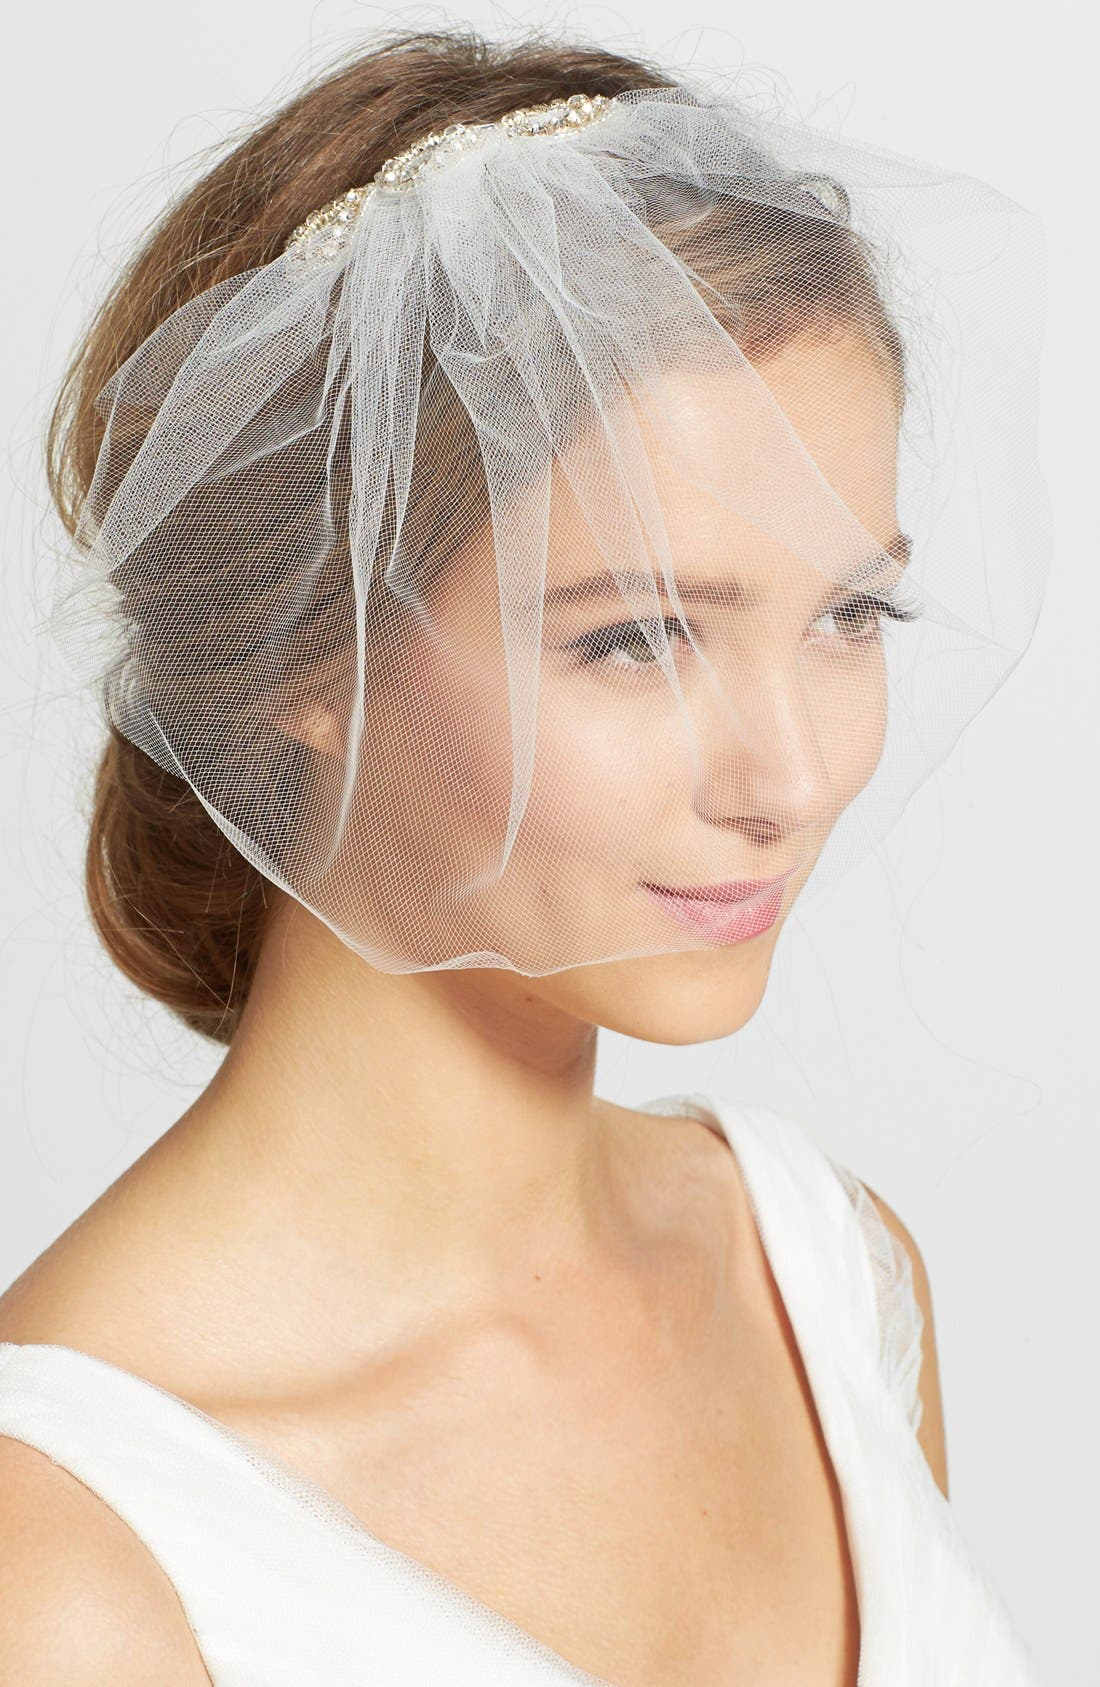 Alternate Image 1 Selected - J-Picone Crystal Comb Tulle Blusher/Birdcage Veil